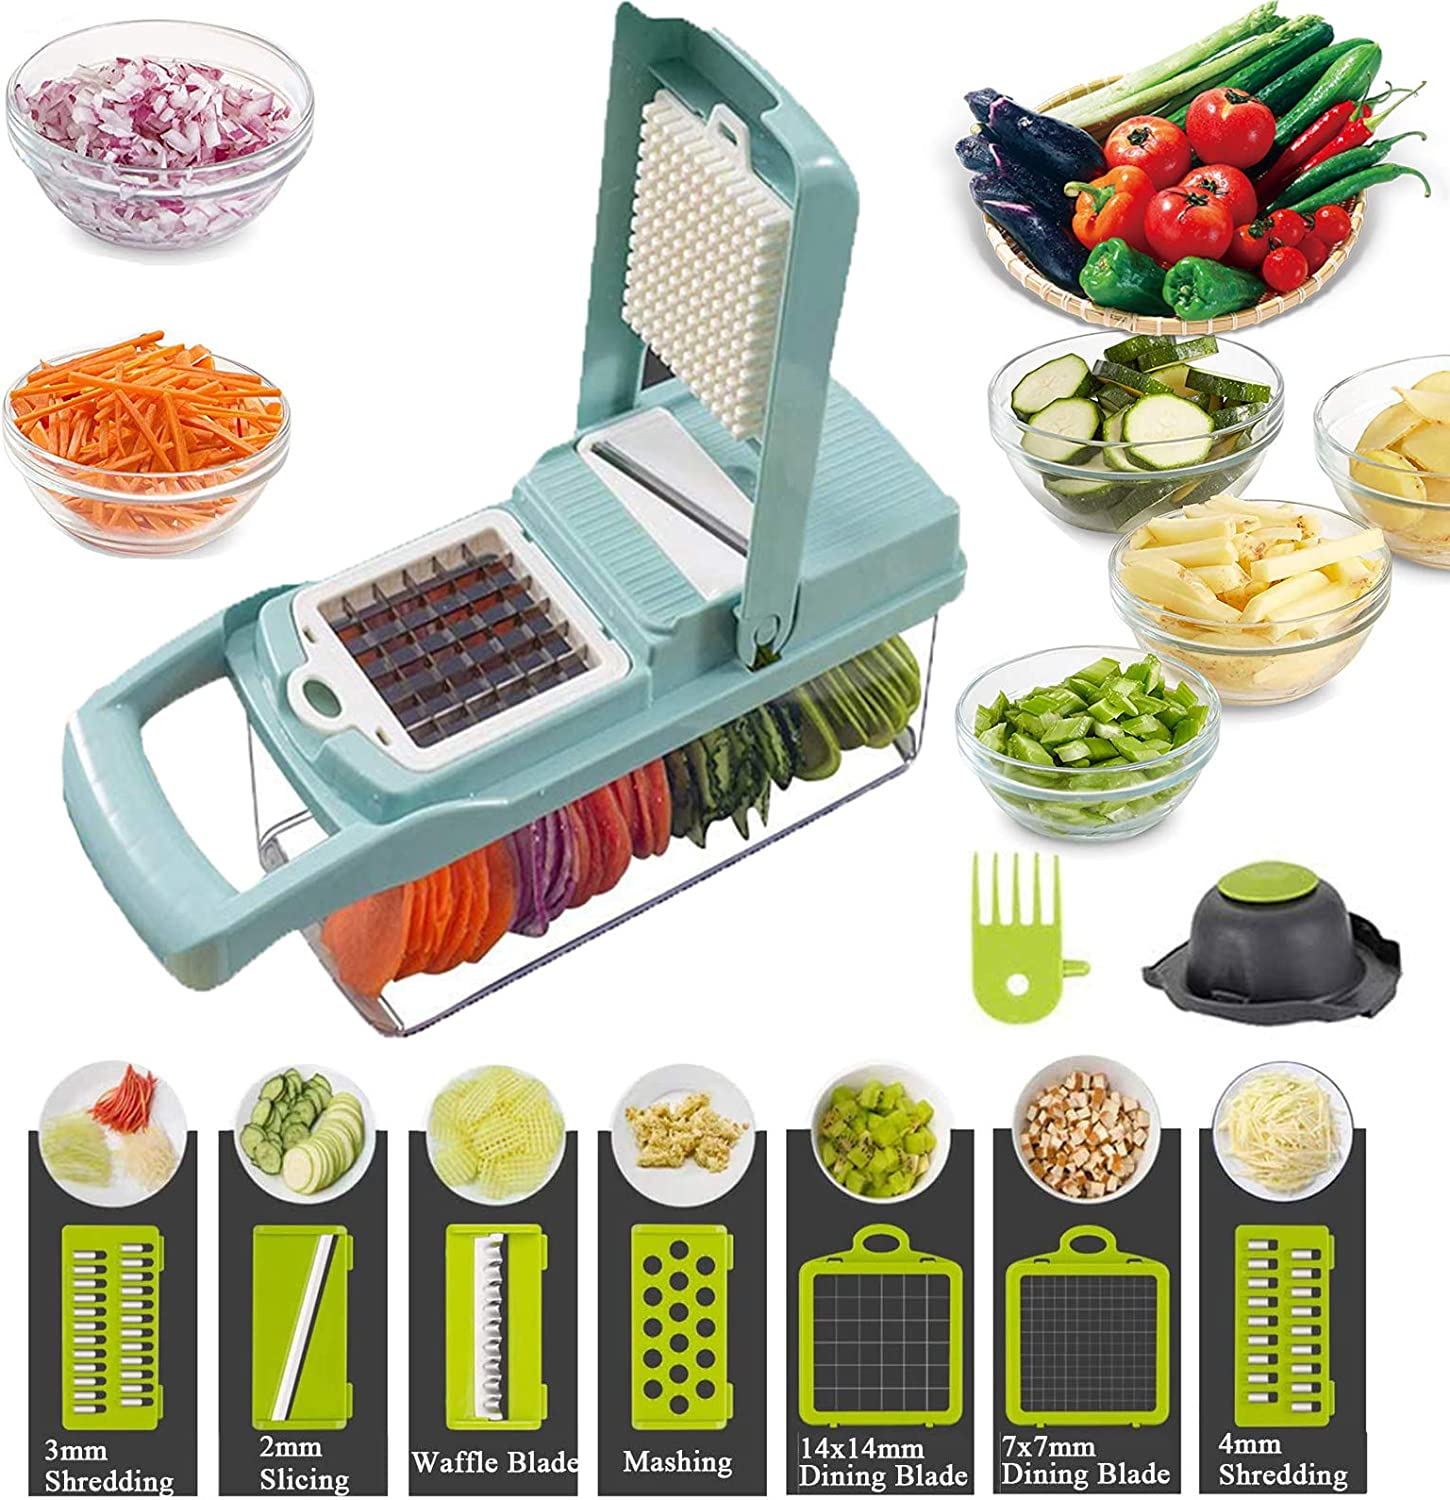 Vegetable Shredder, 12-In-1, The Third Generation Food Shredding (Slicing) Machine for Cutting Vegetables, Cheese, Fruits, Celery, Potatoes, Carrots, Fruit Salads (Blue)